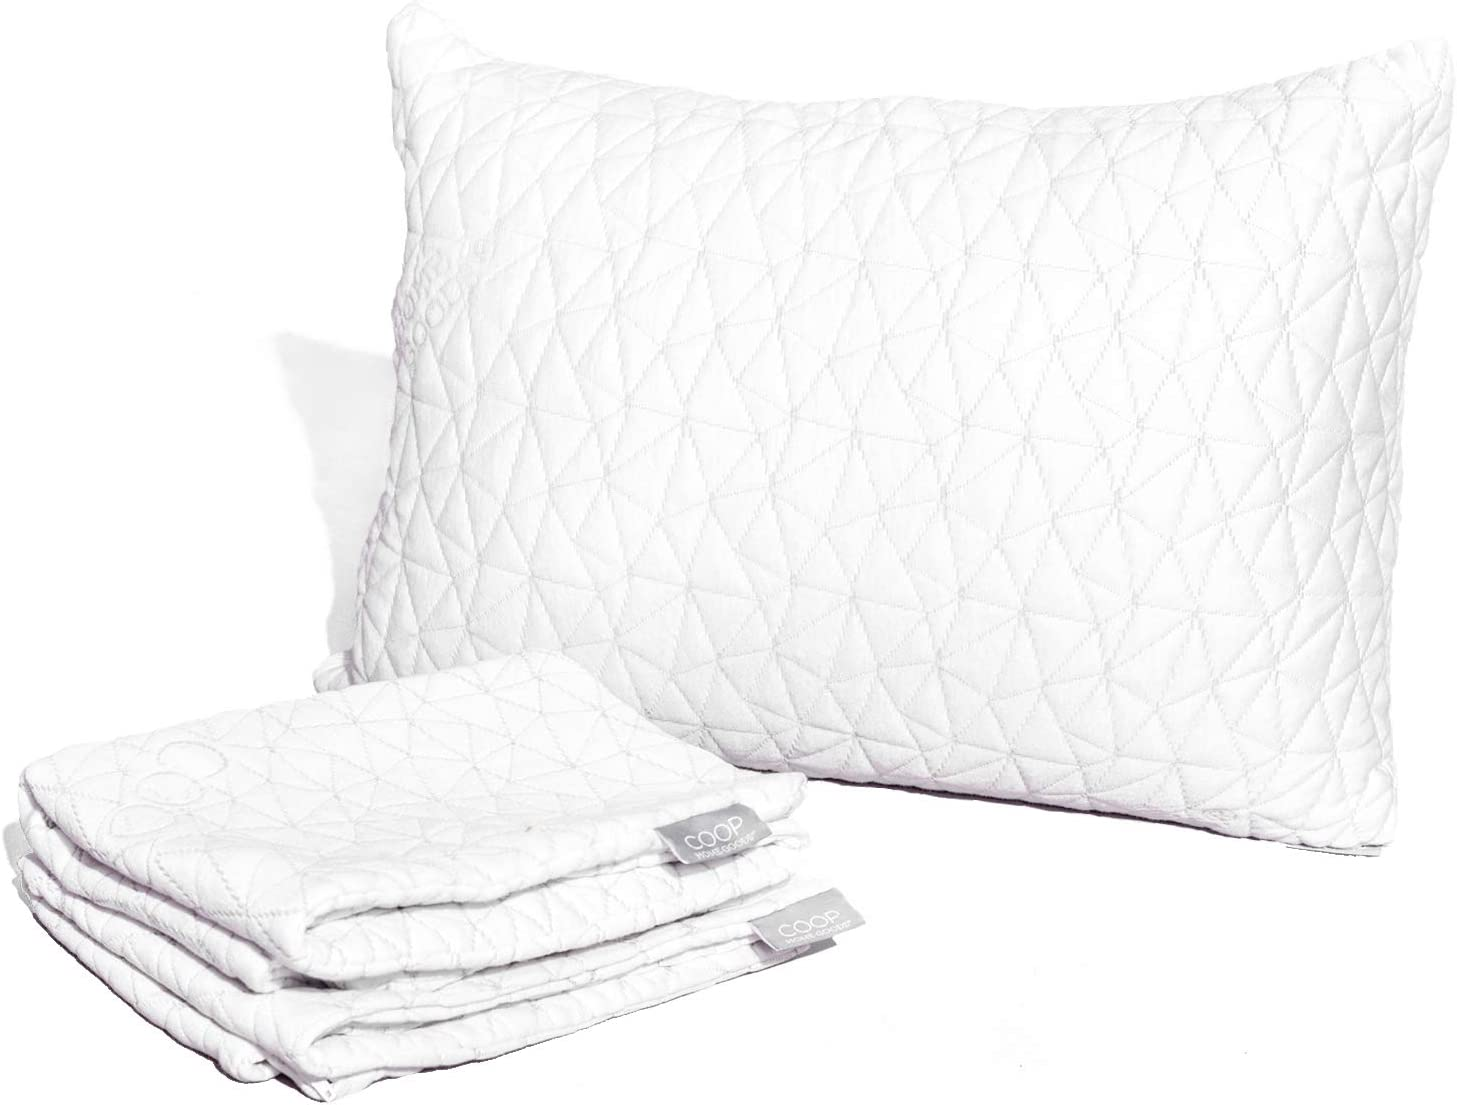 "Coop Home Goods - Breathable Ultra Soft Noiseless Pillowcase - Patented Lulltra Fabric from Bamboo Derived Viscose Rayon and Polyester Blend - Oeko-Tex Certified - Standard Size 20""x 26"""